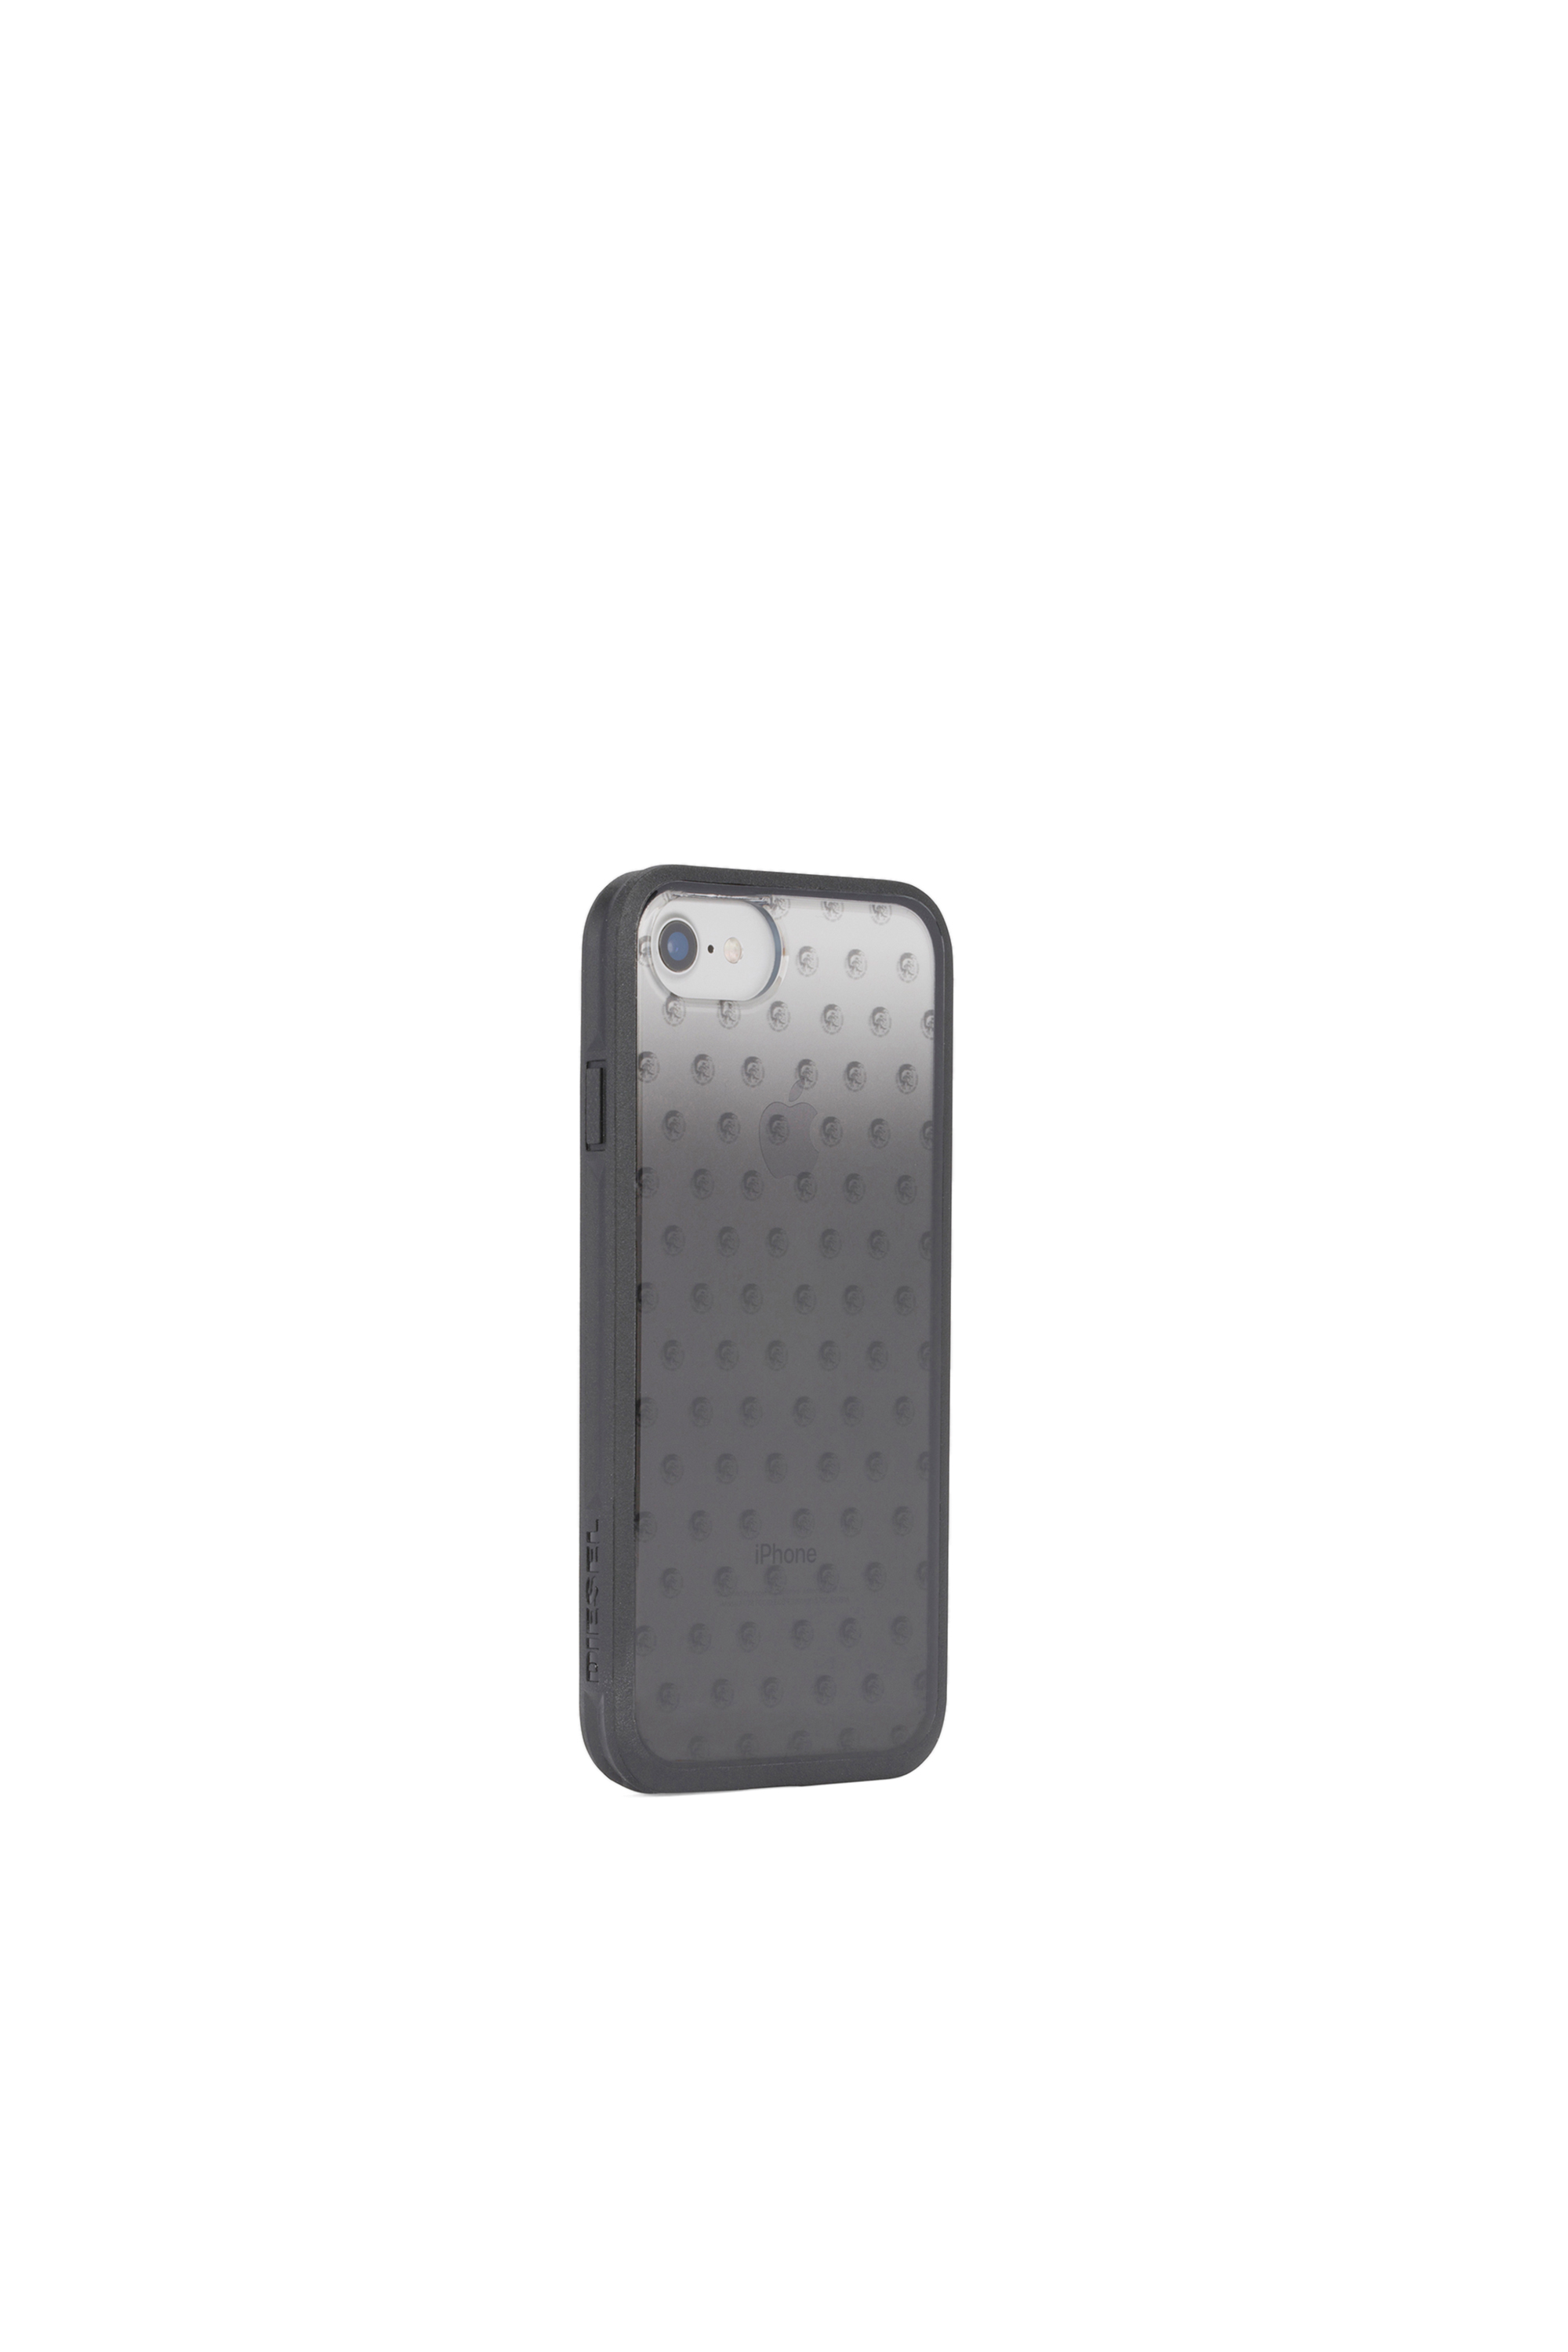 Diesel - MOHICAN HEAD DOTS BLACK IPHONE 8/7/6s/6 CASE,  - Coques - Image 6